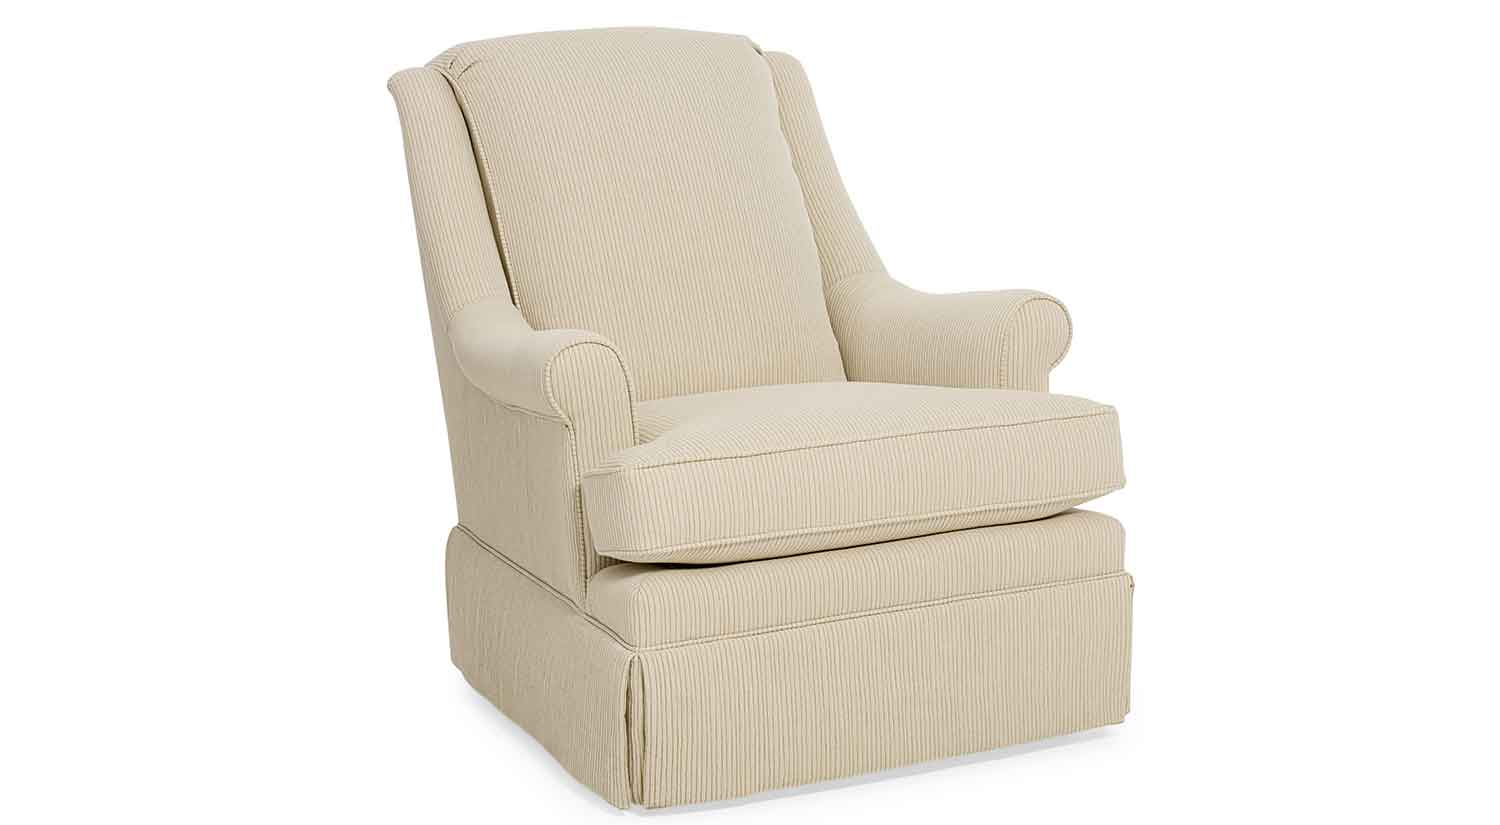 Circle Furniture Holden Swivel Glider Swivel Chairs